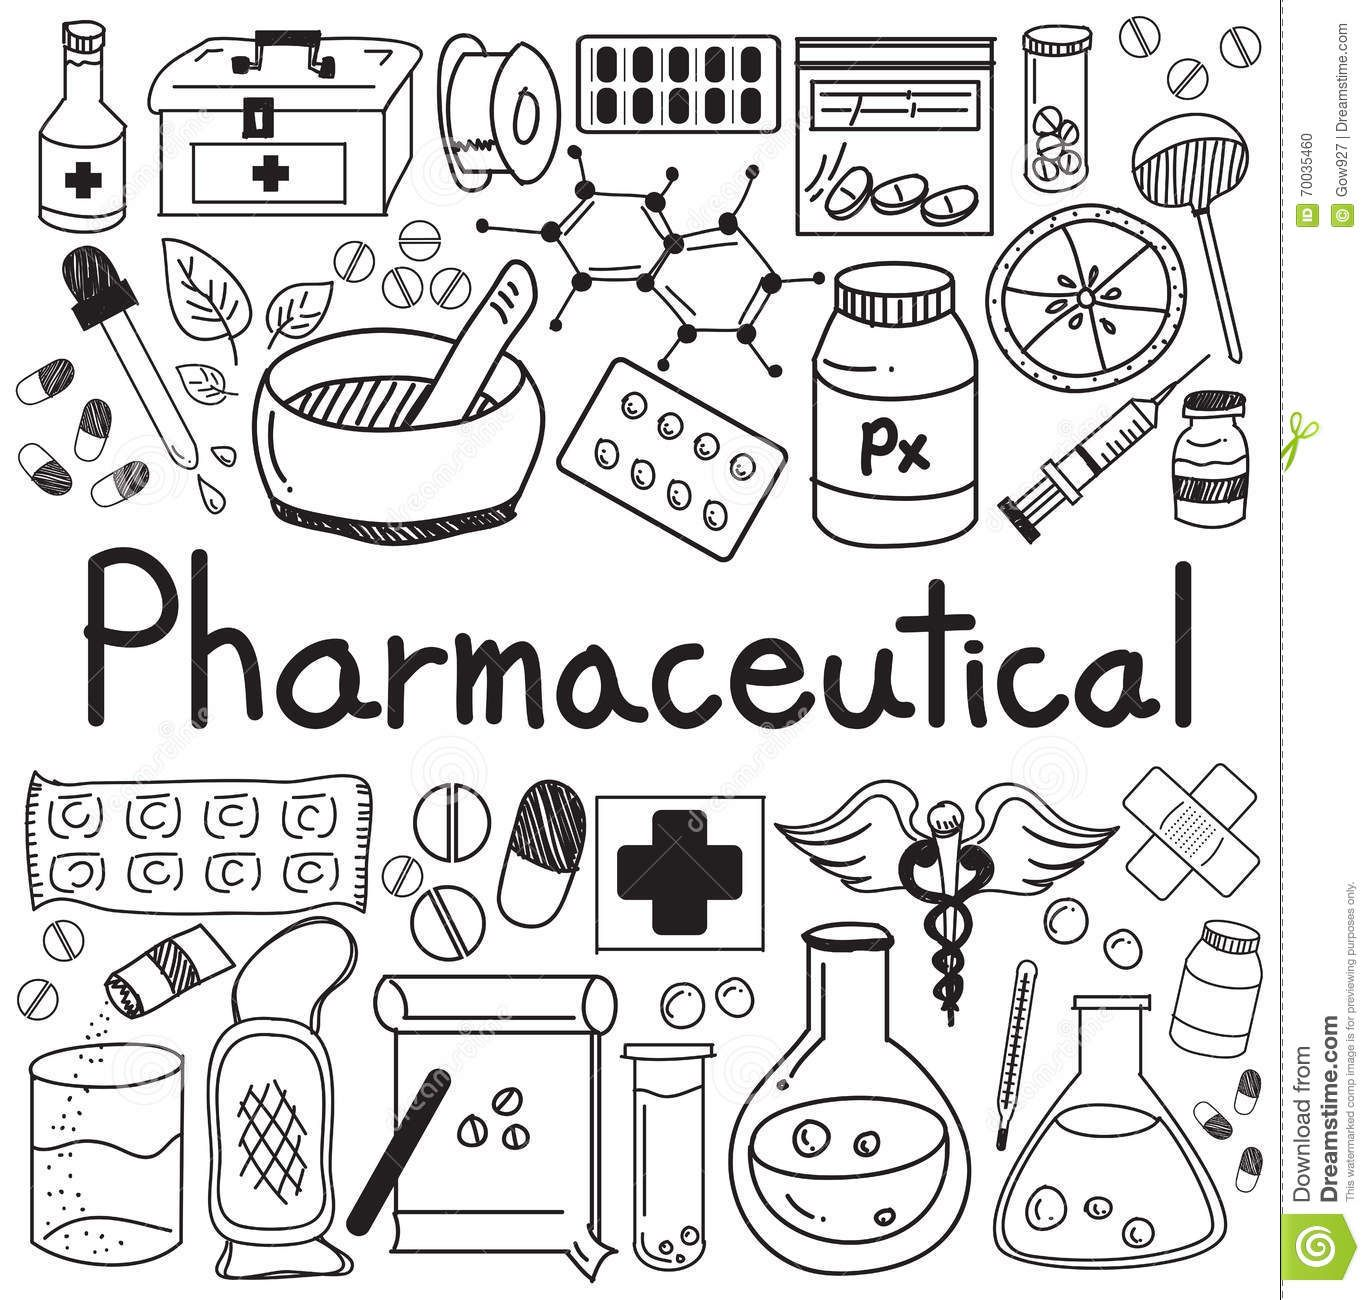 Pharmaceutical And Pharmacist Doodle Handwriting Icons Download From Over 65 Million High Quality Stock Photos I Doodles Pharmacy Art Bullet Journal Doodles